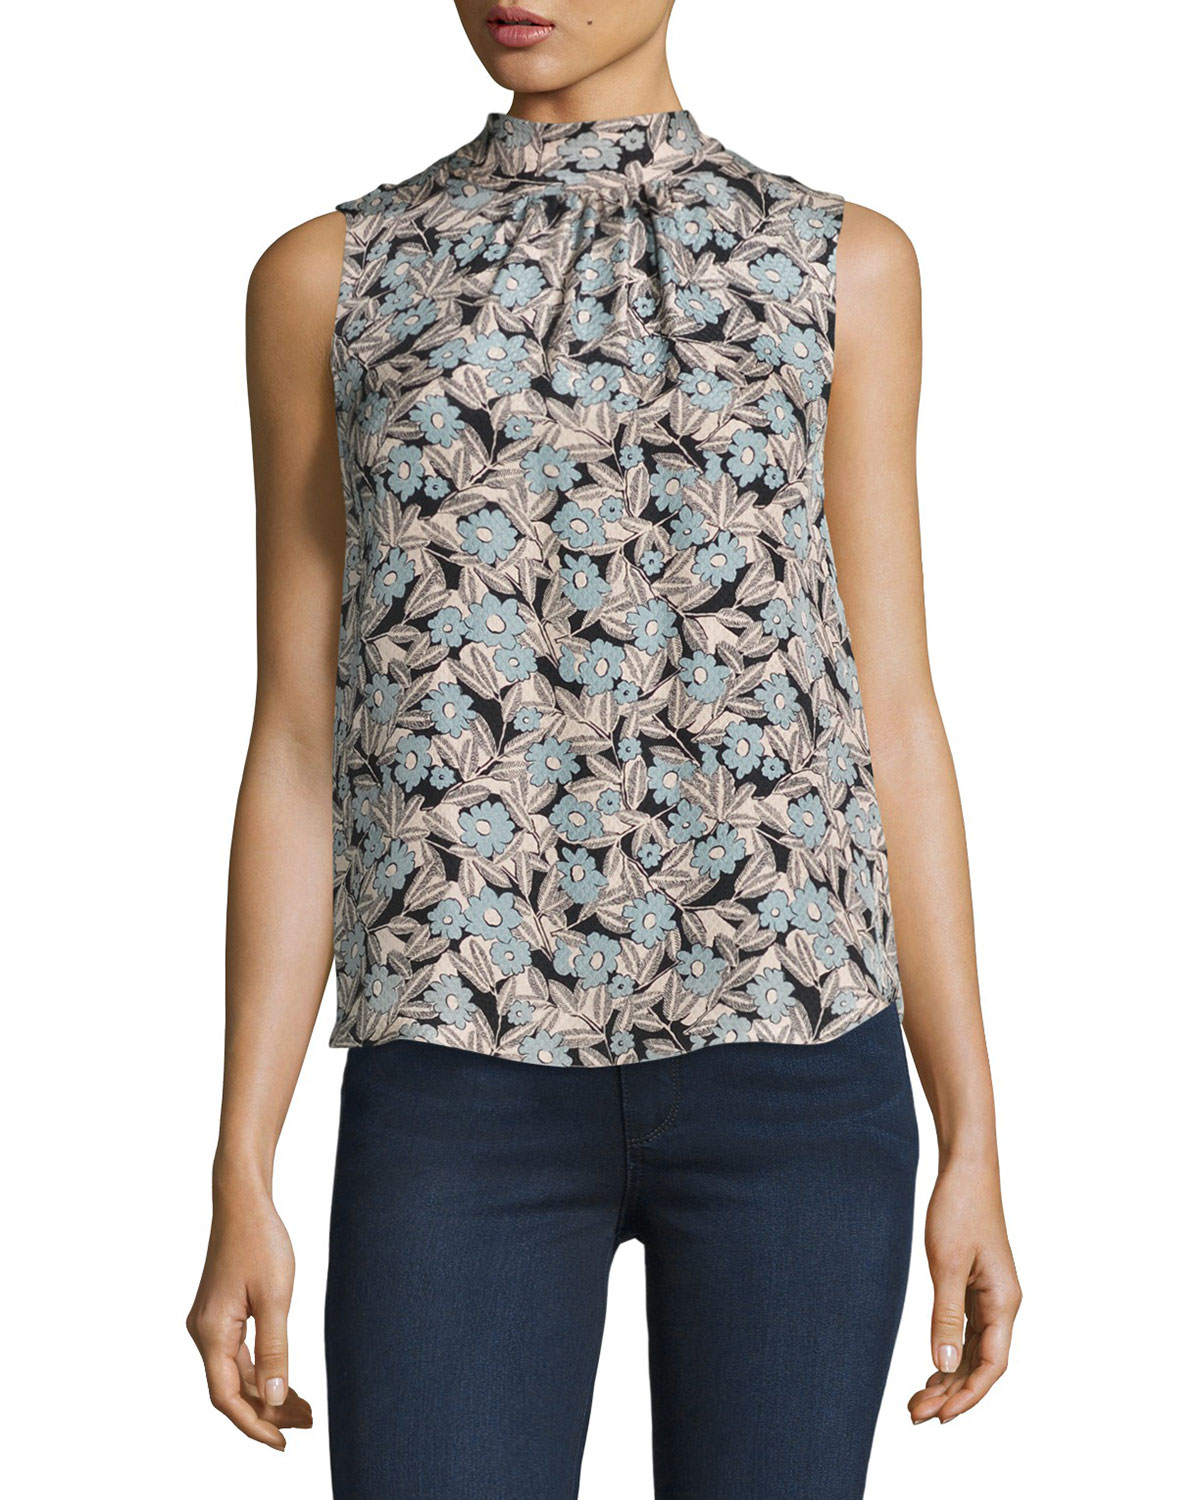 Rebecca Taylor Womens Sleeveless Mock Neck Top